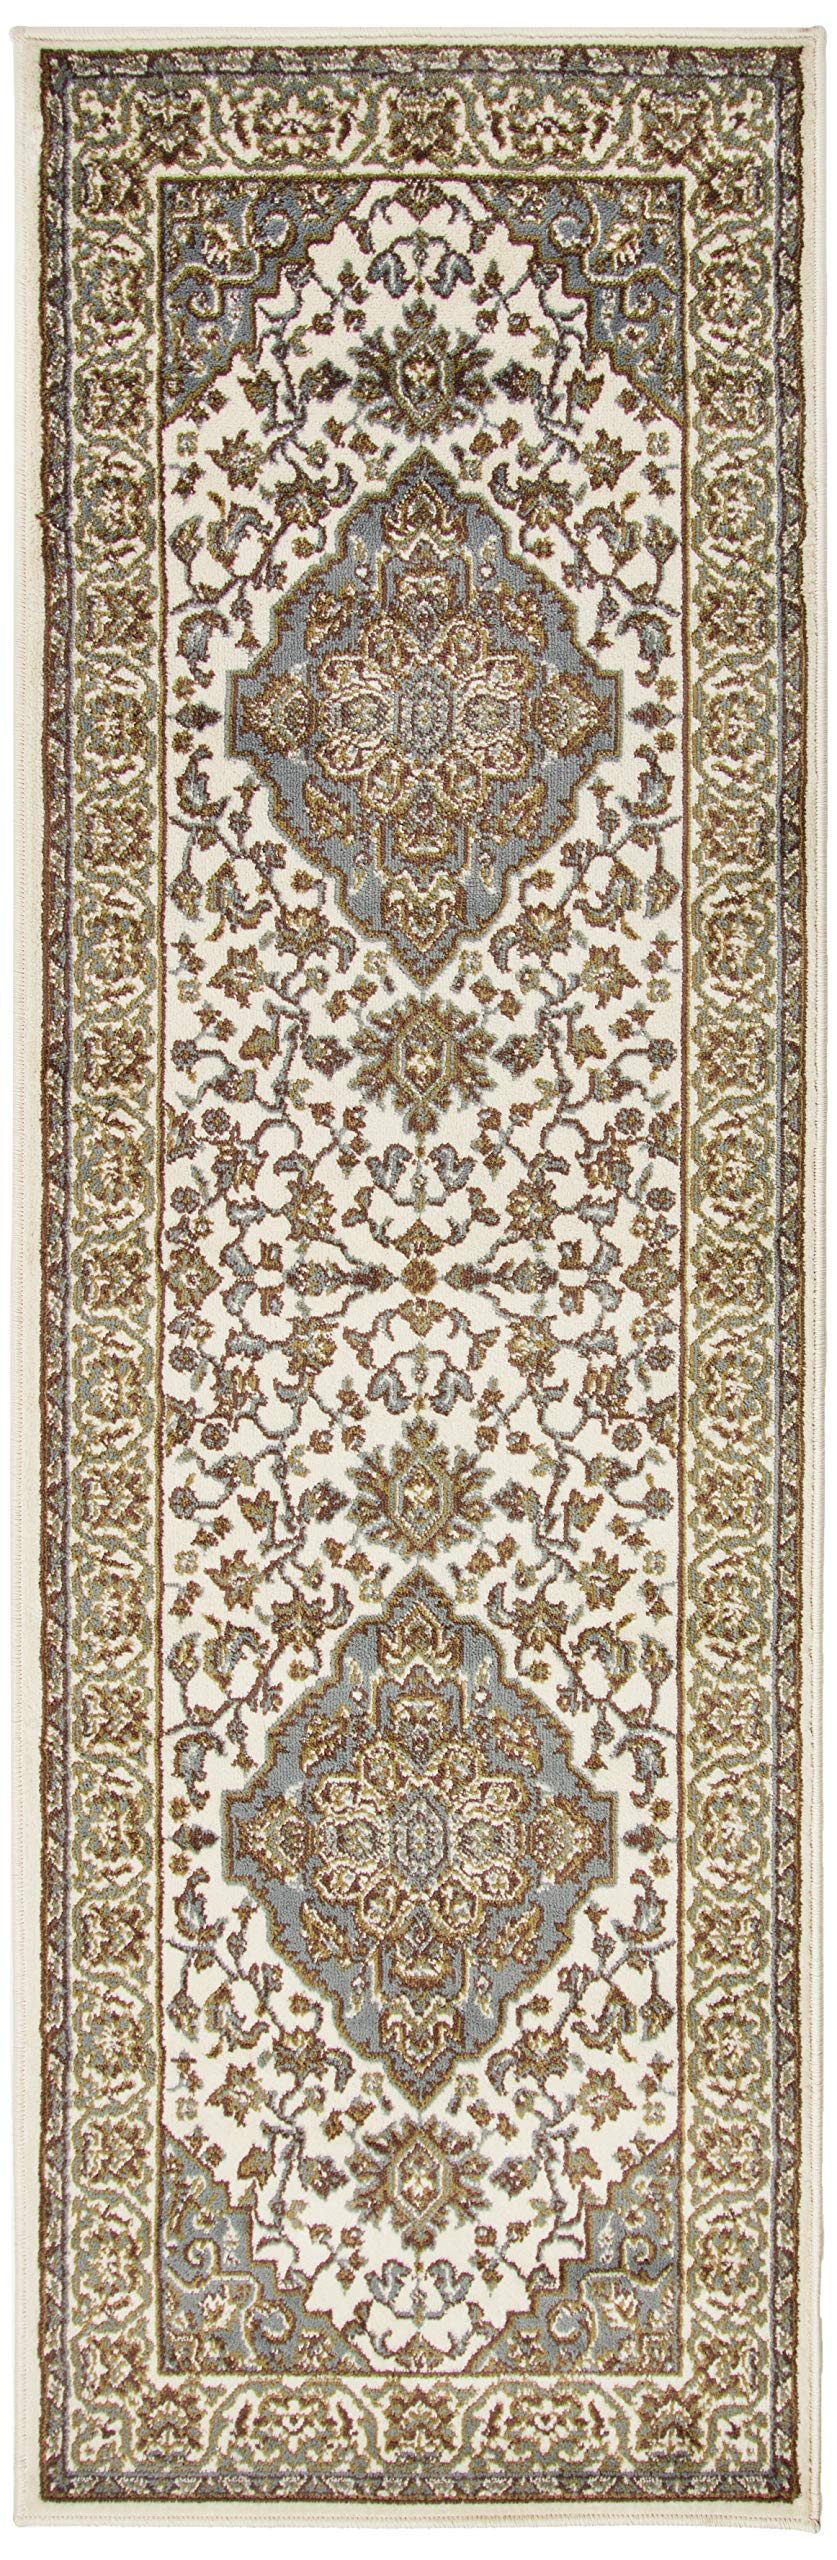 """Superior Elegant Glendale Collection Area Rug, 8mm Pile Height with Jute Backing, Traditional Oriental Rug Design, Anti-Static, Water-Repellent Rugs - Green, 2'7"""" x 8' Runner"""